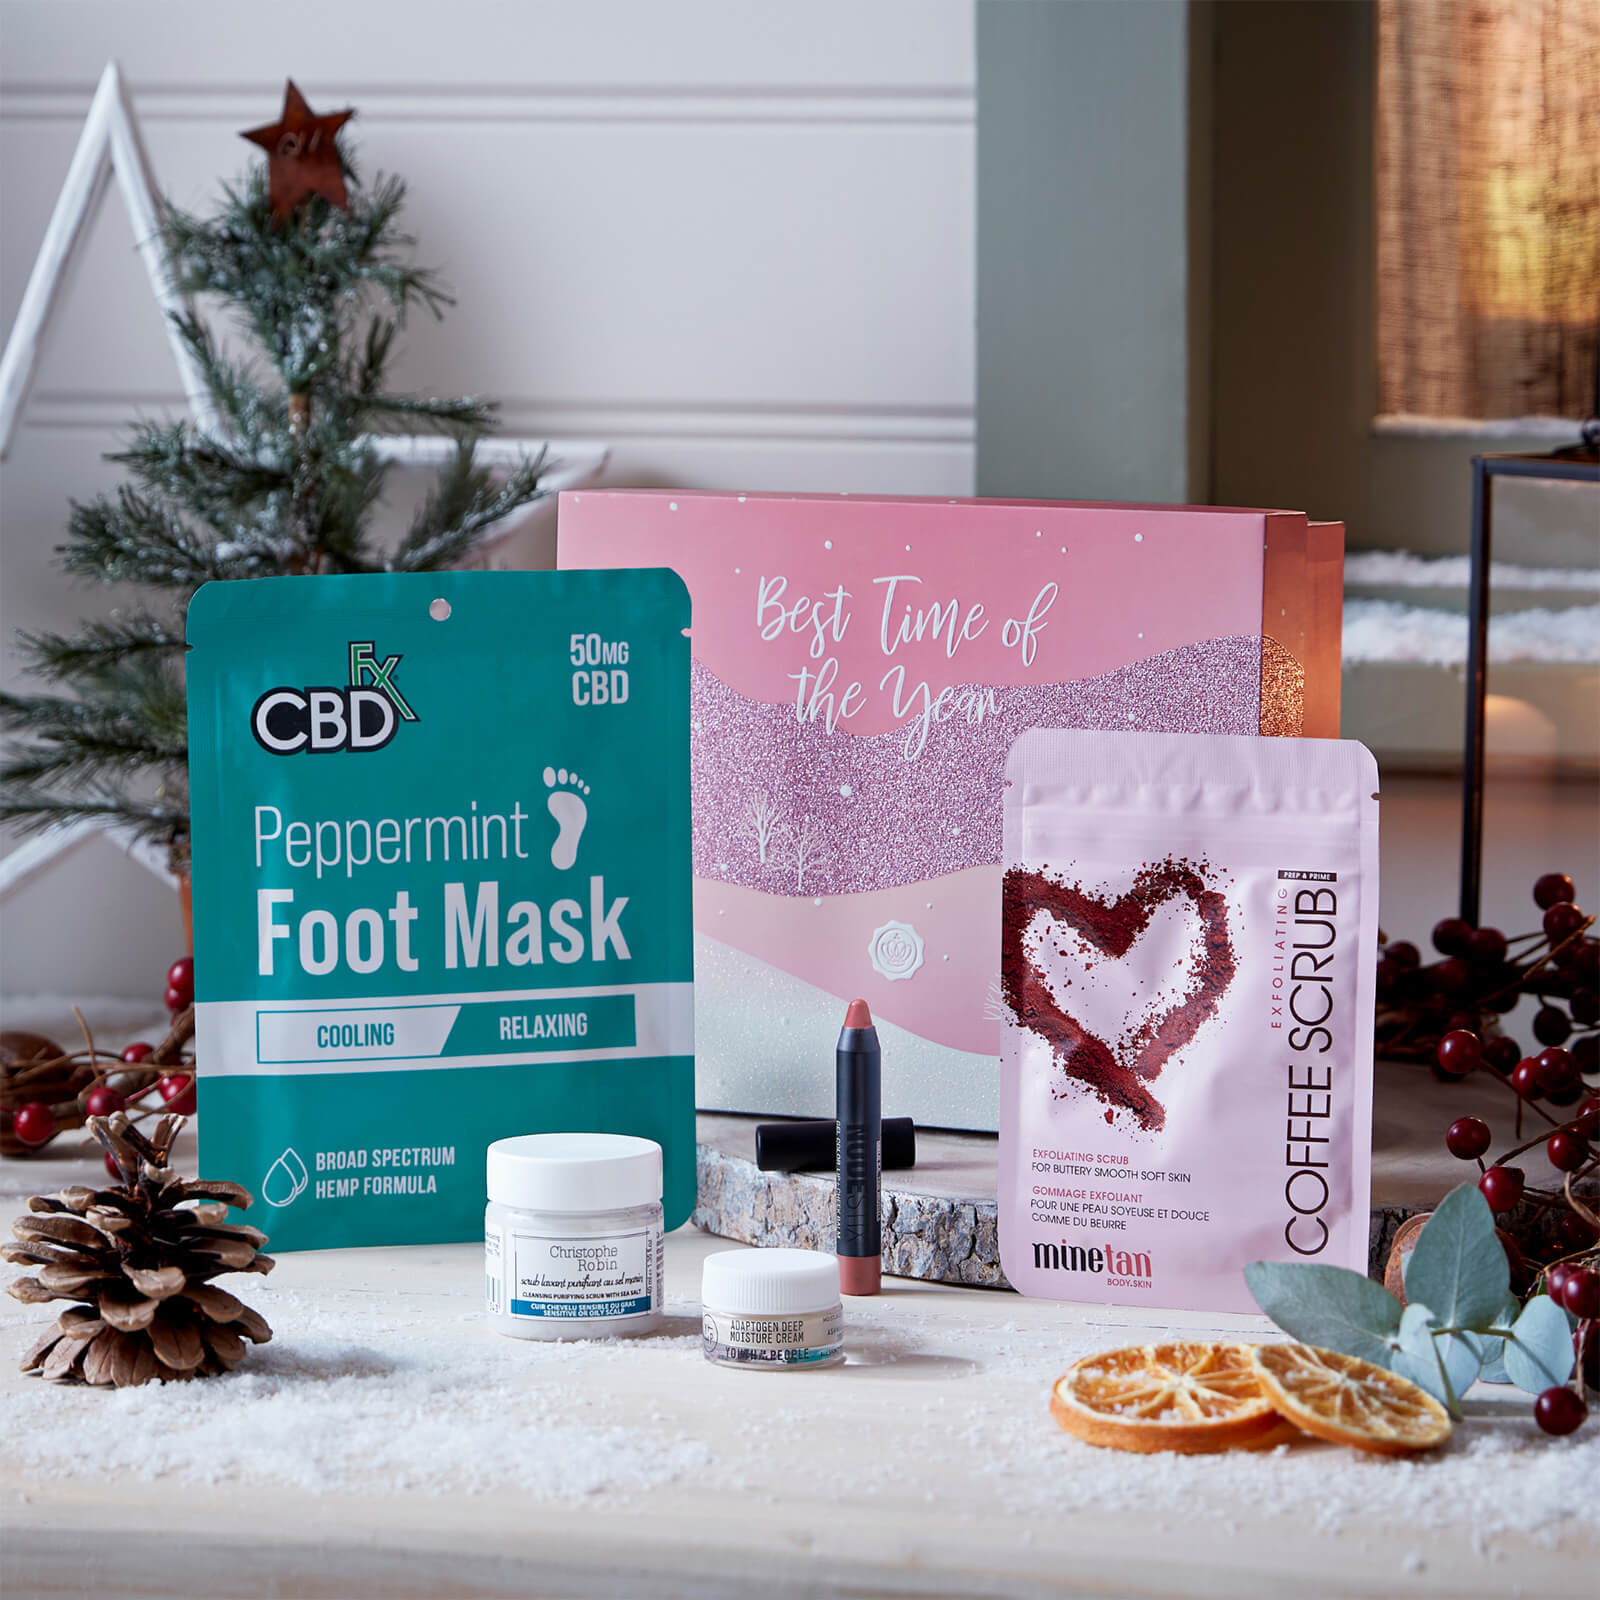 Glossy Box coupon: Best Time of the Year Edition